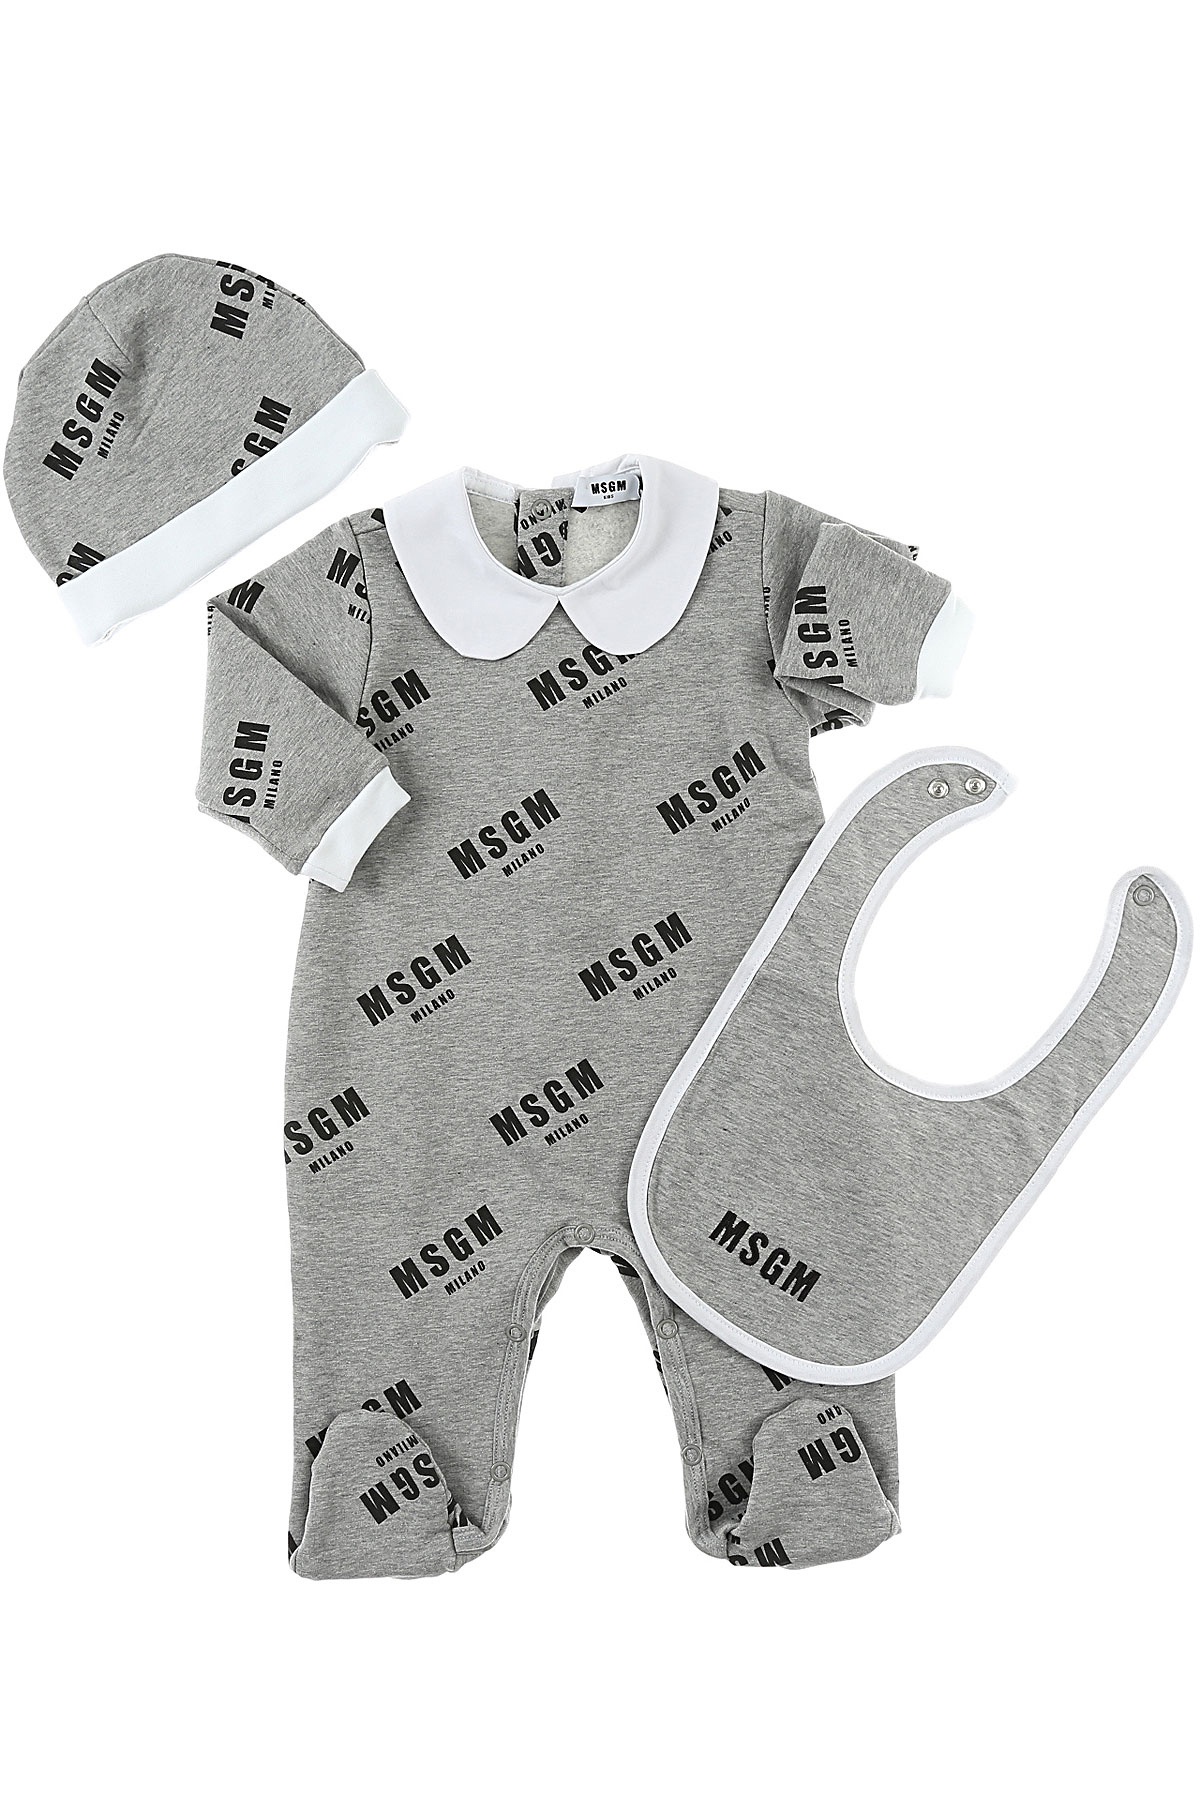 Image of MSGM Baby Sets for Boys, Grey, Cotton, 2017, 12M 18M 9M